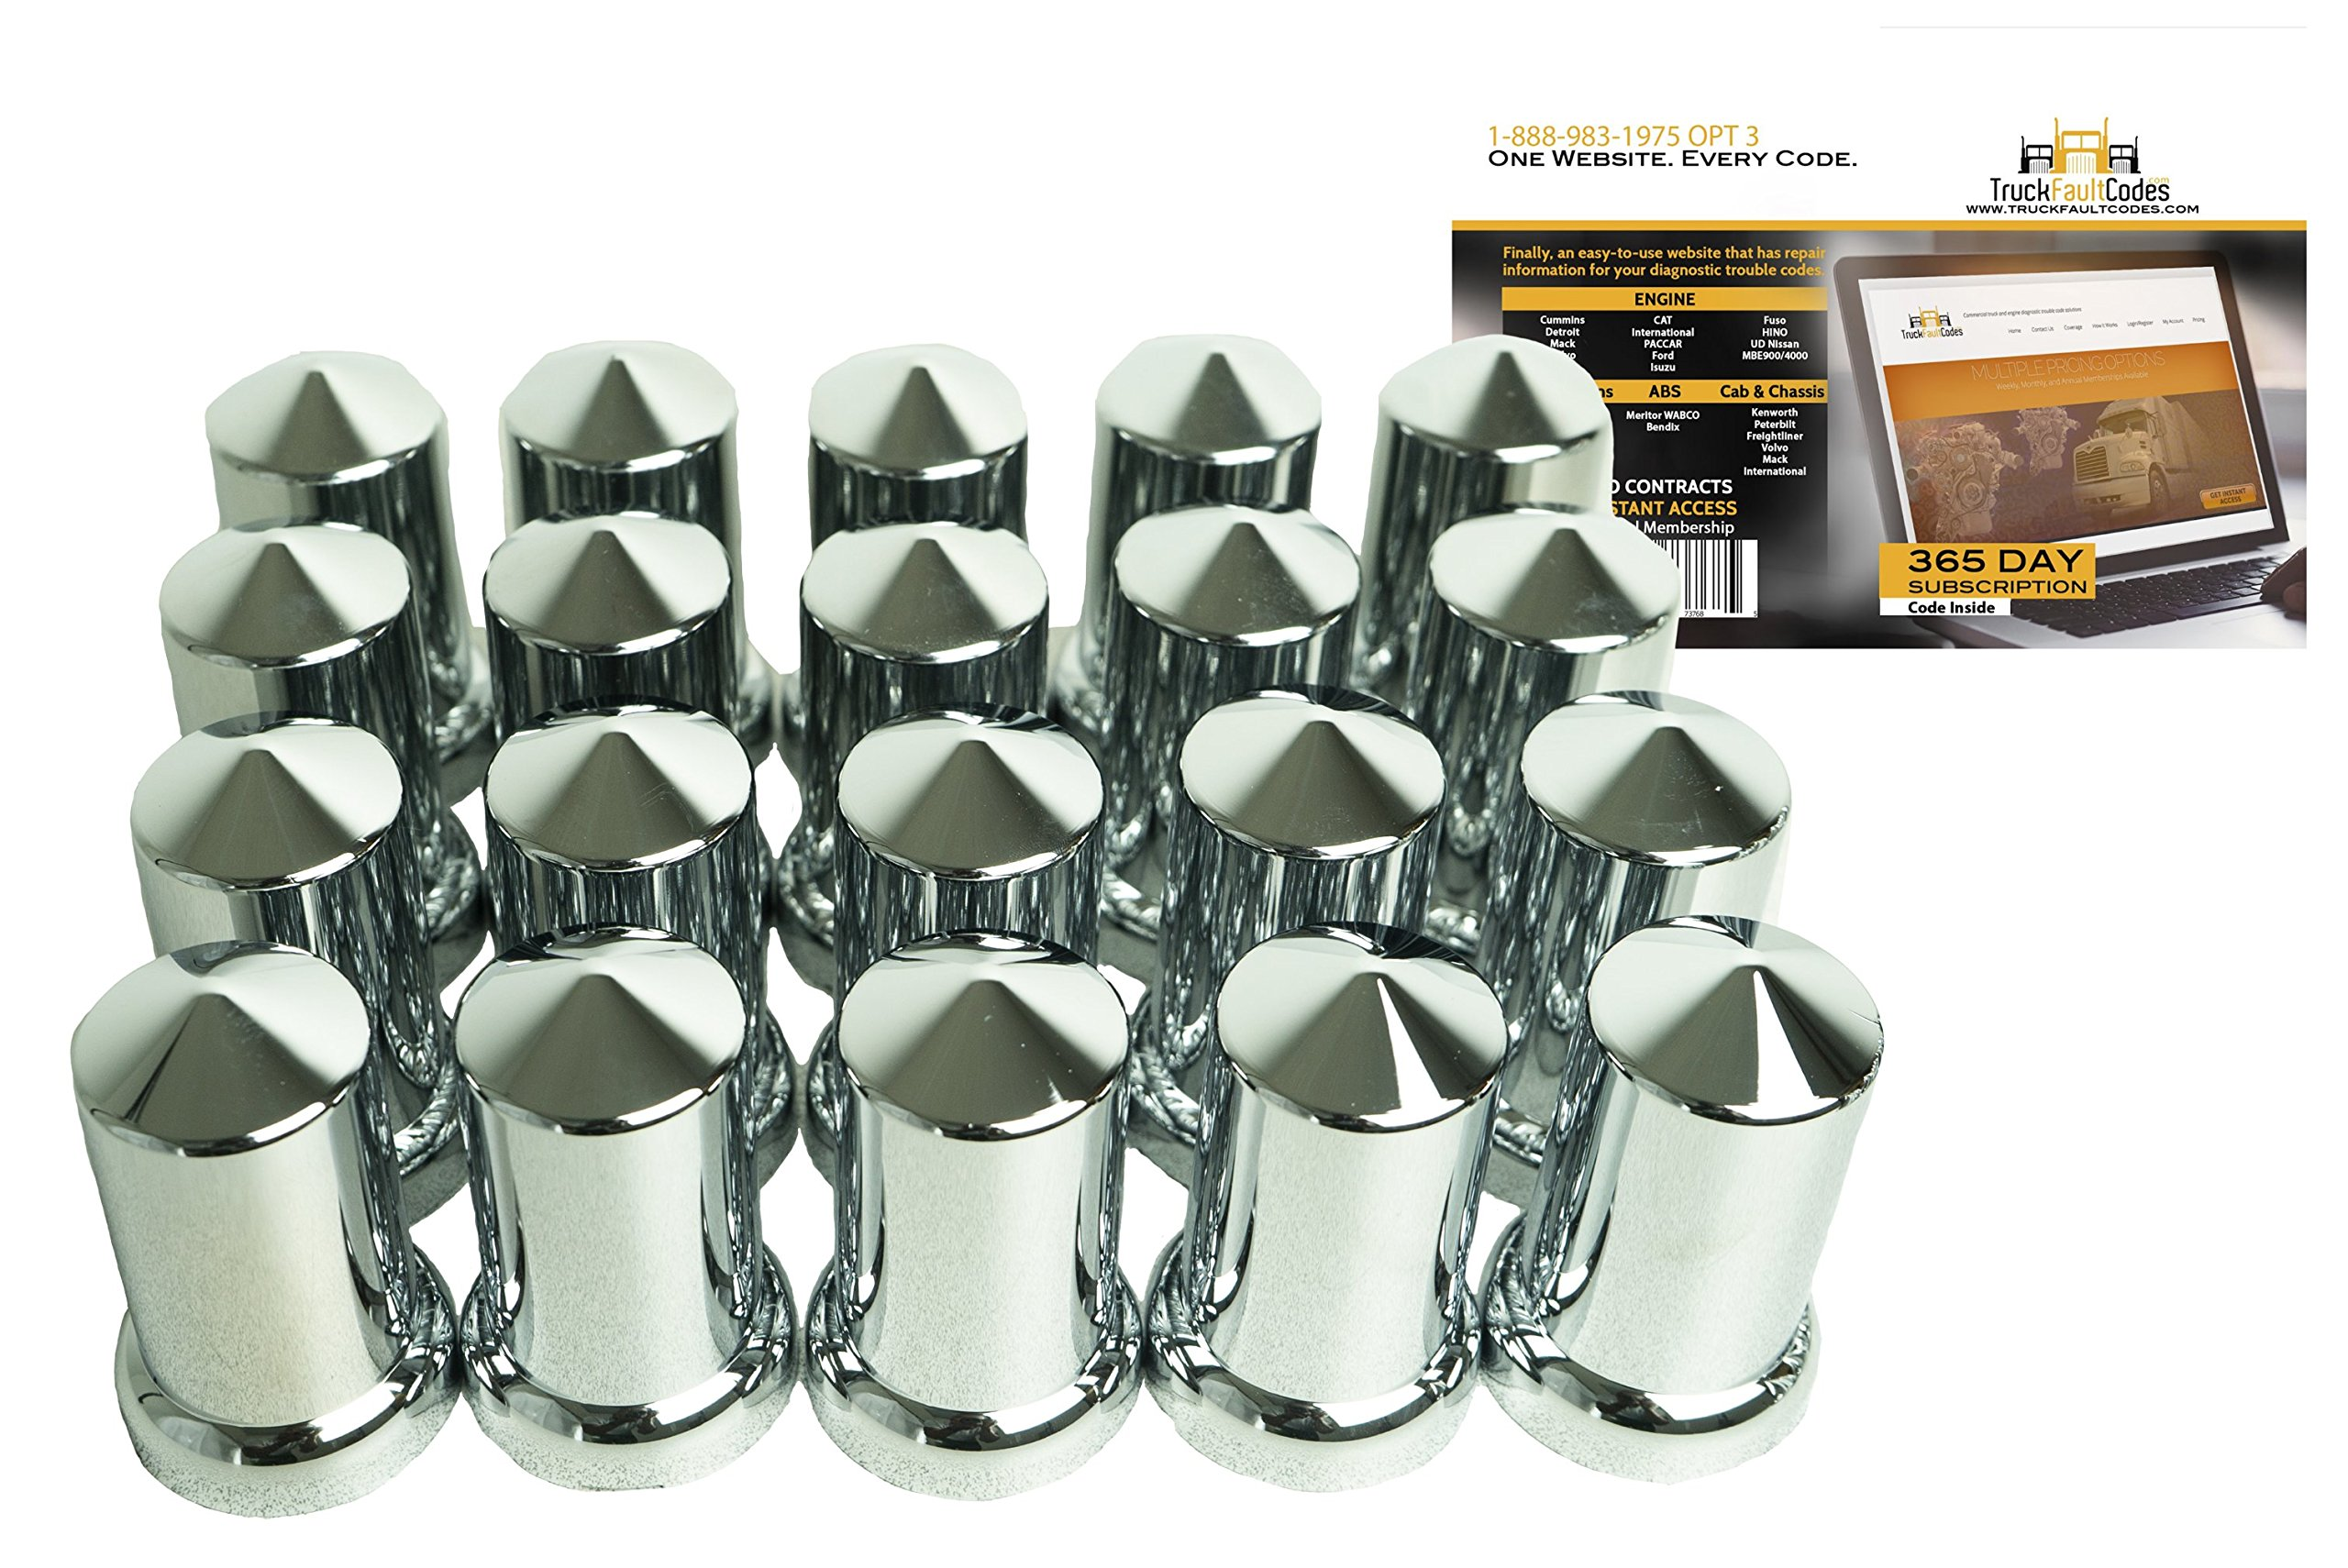 Diesel Laptops 20 Pack of 33mm x 3-1/8'' Chrome Pointed Push on Nut Cover for Commercial Heavy Semi Trucks with 12-month Membership to TruckFaultCodes